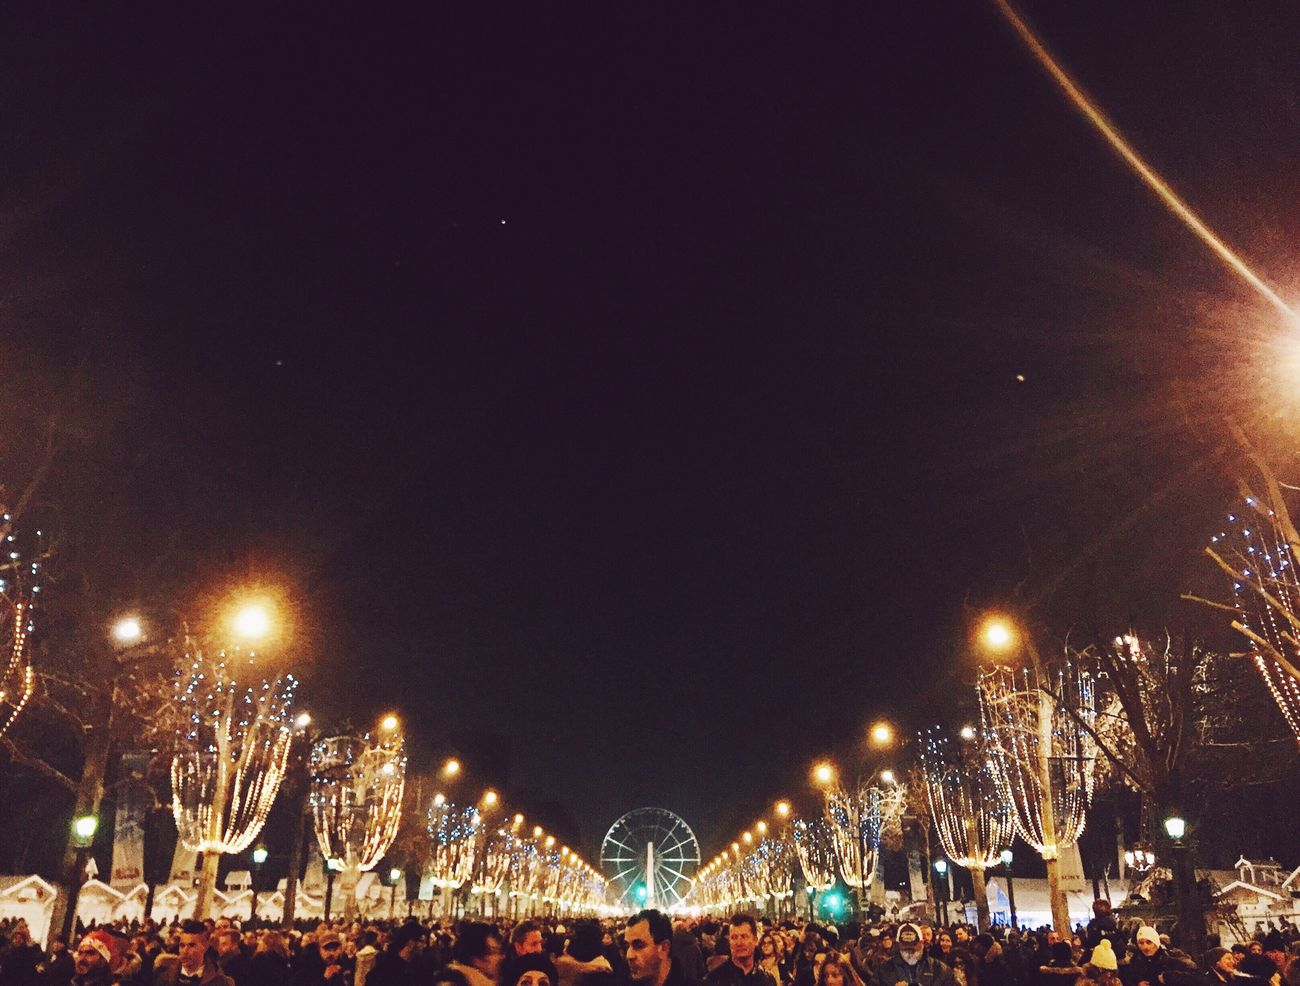 Paris Happynewyear